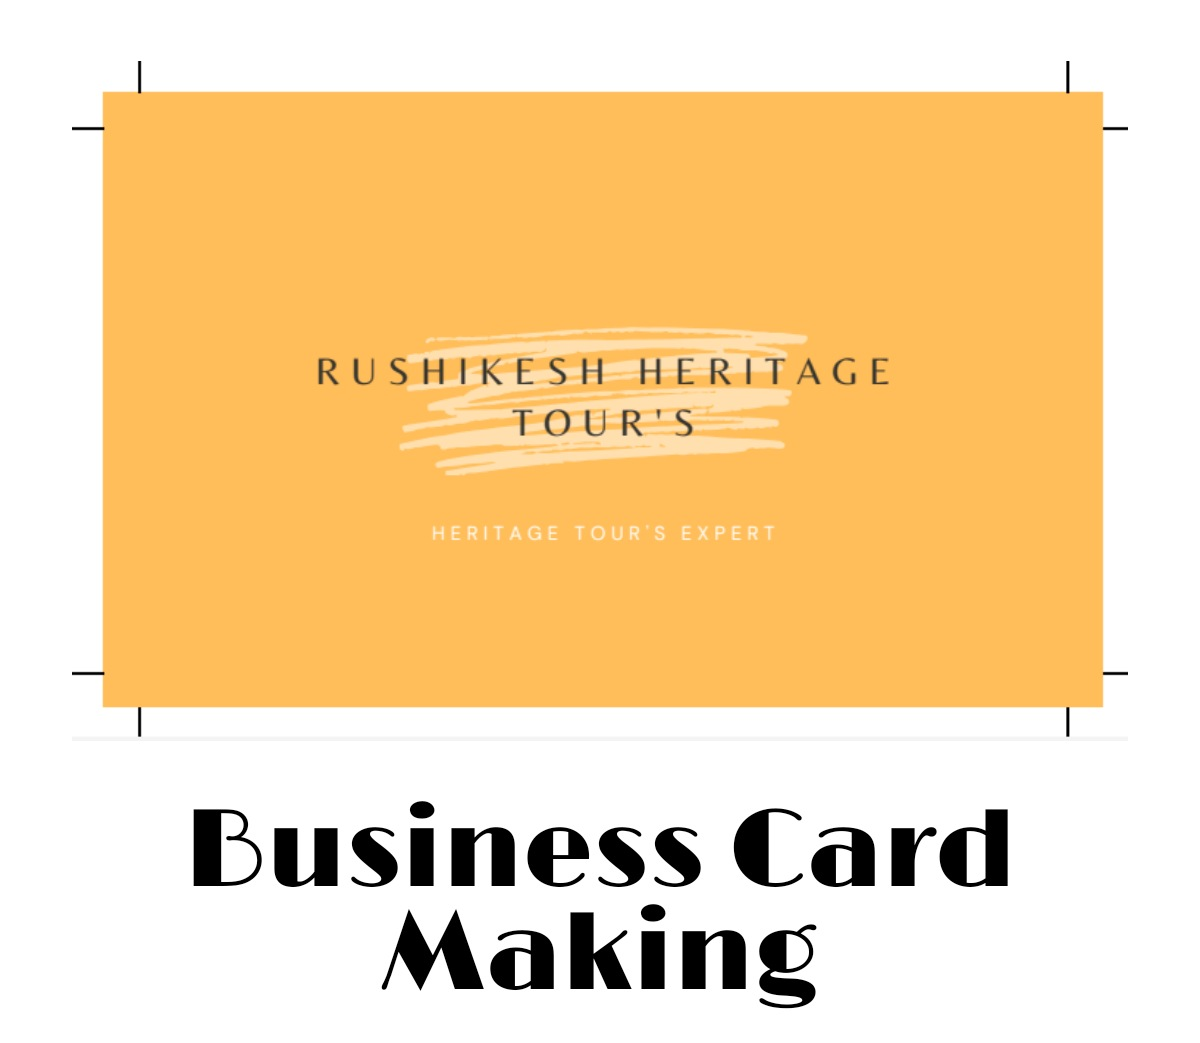 Professional Business Card Making